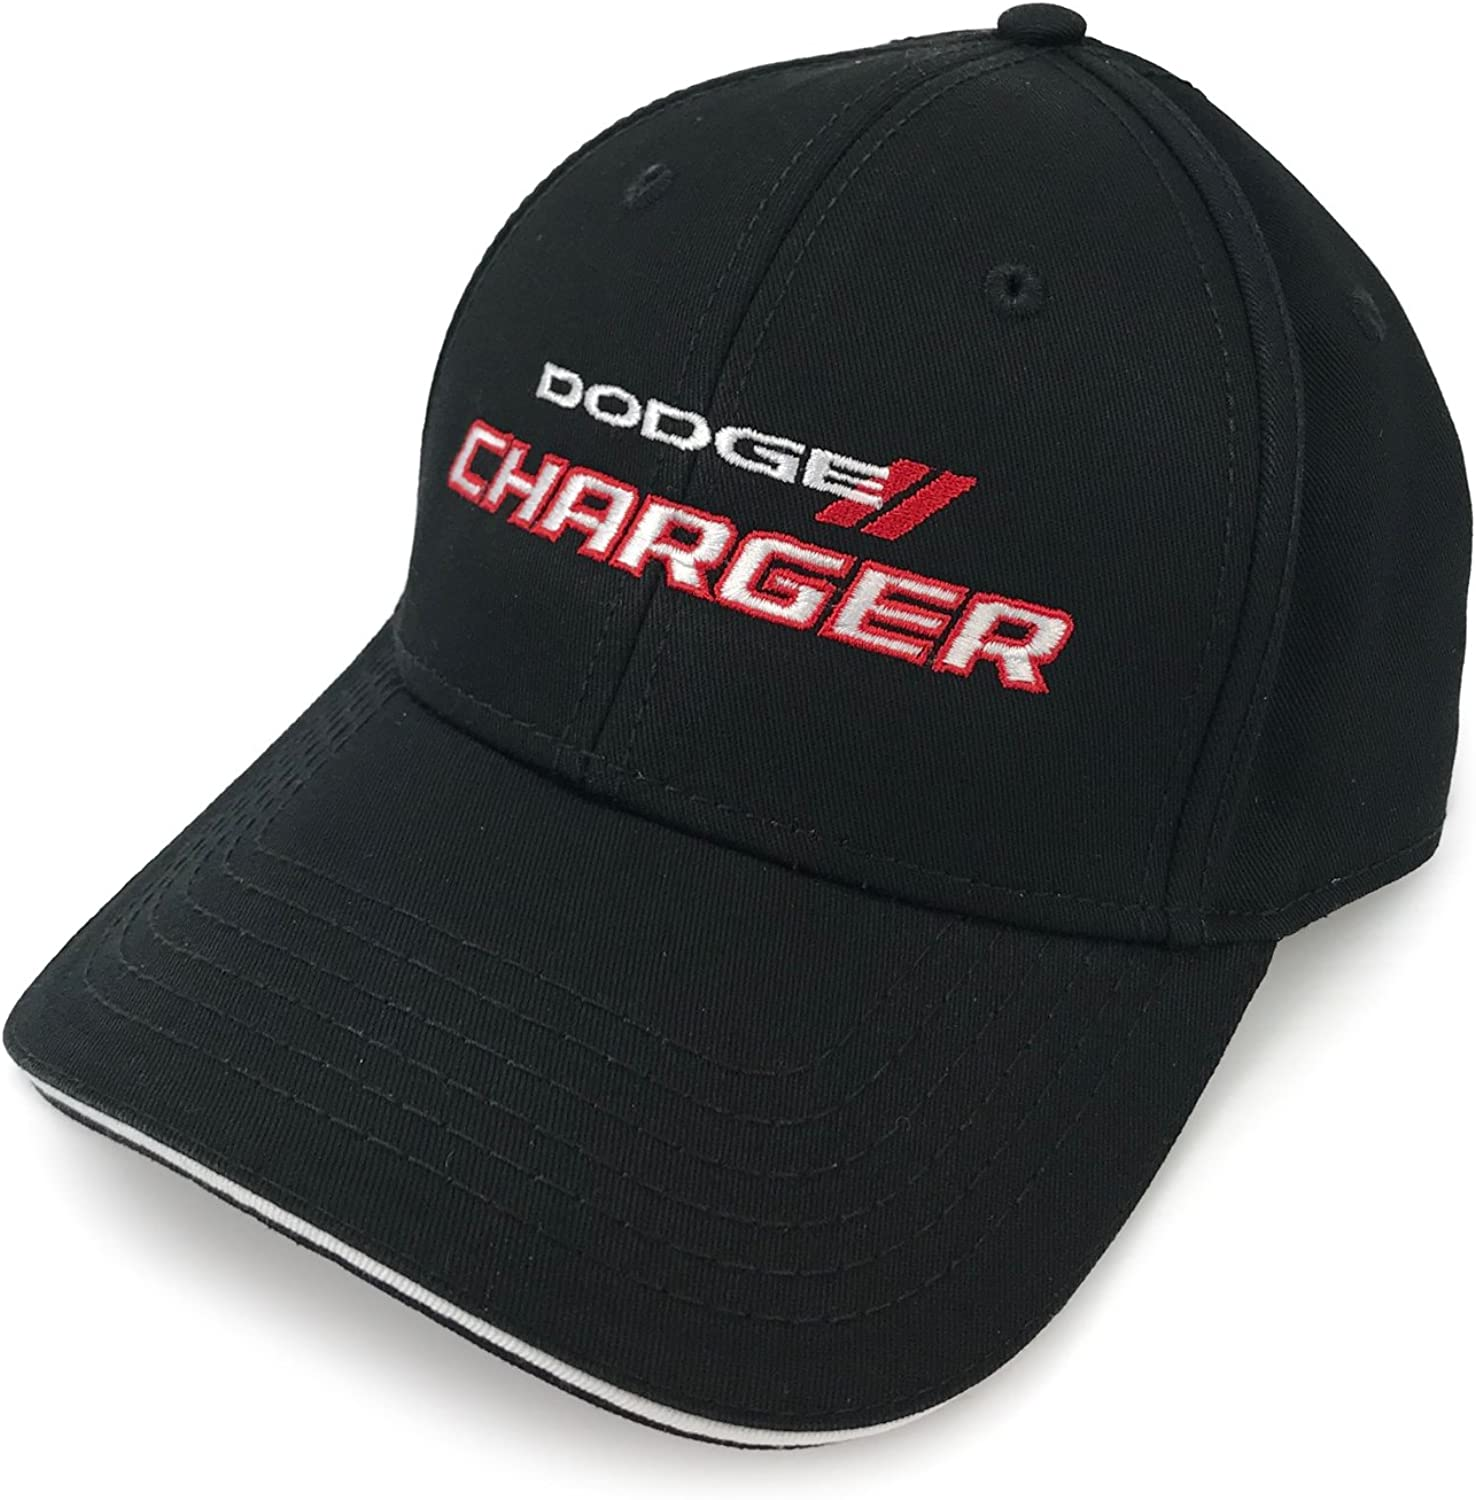 Black Cotton Twill Hat Cap for Dodge Charger